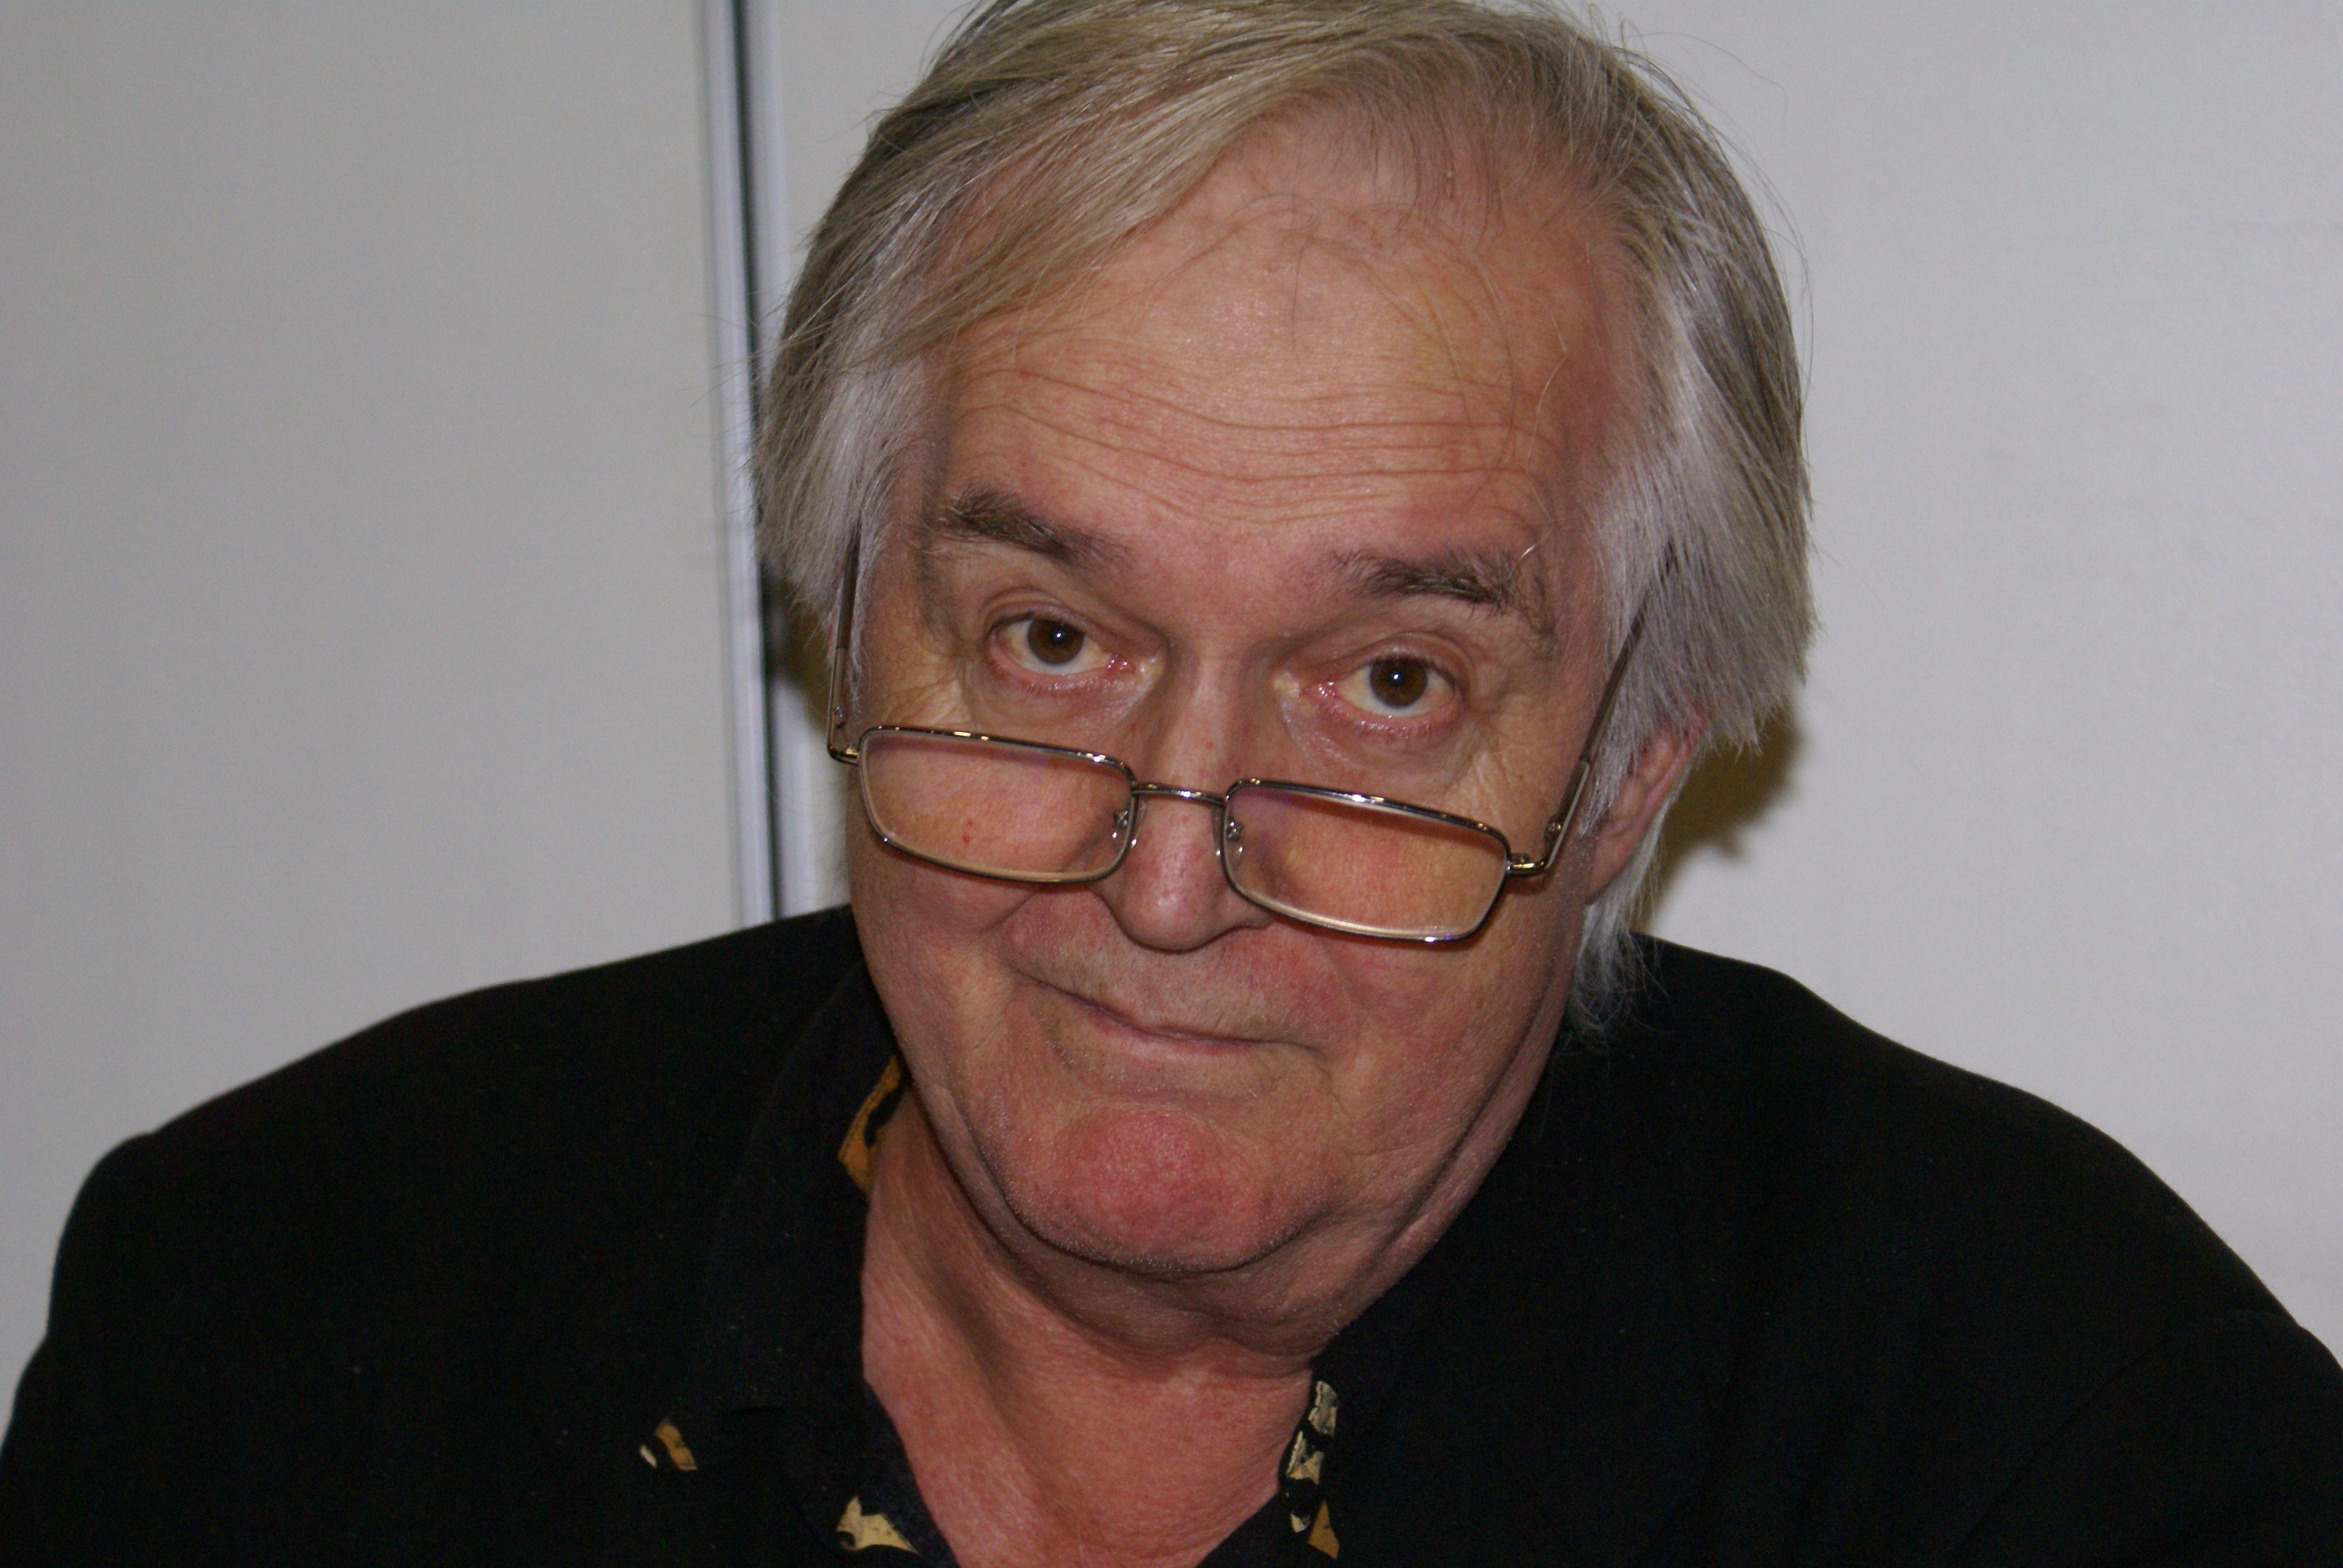 Henning Mankell's quote #5